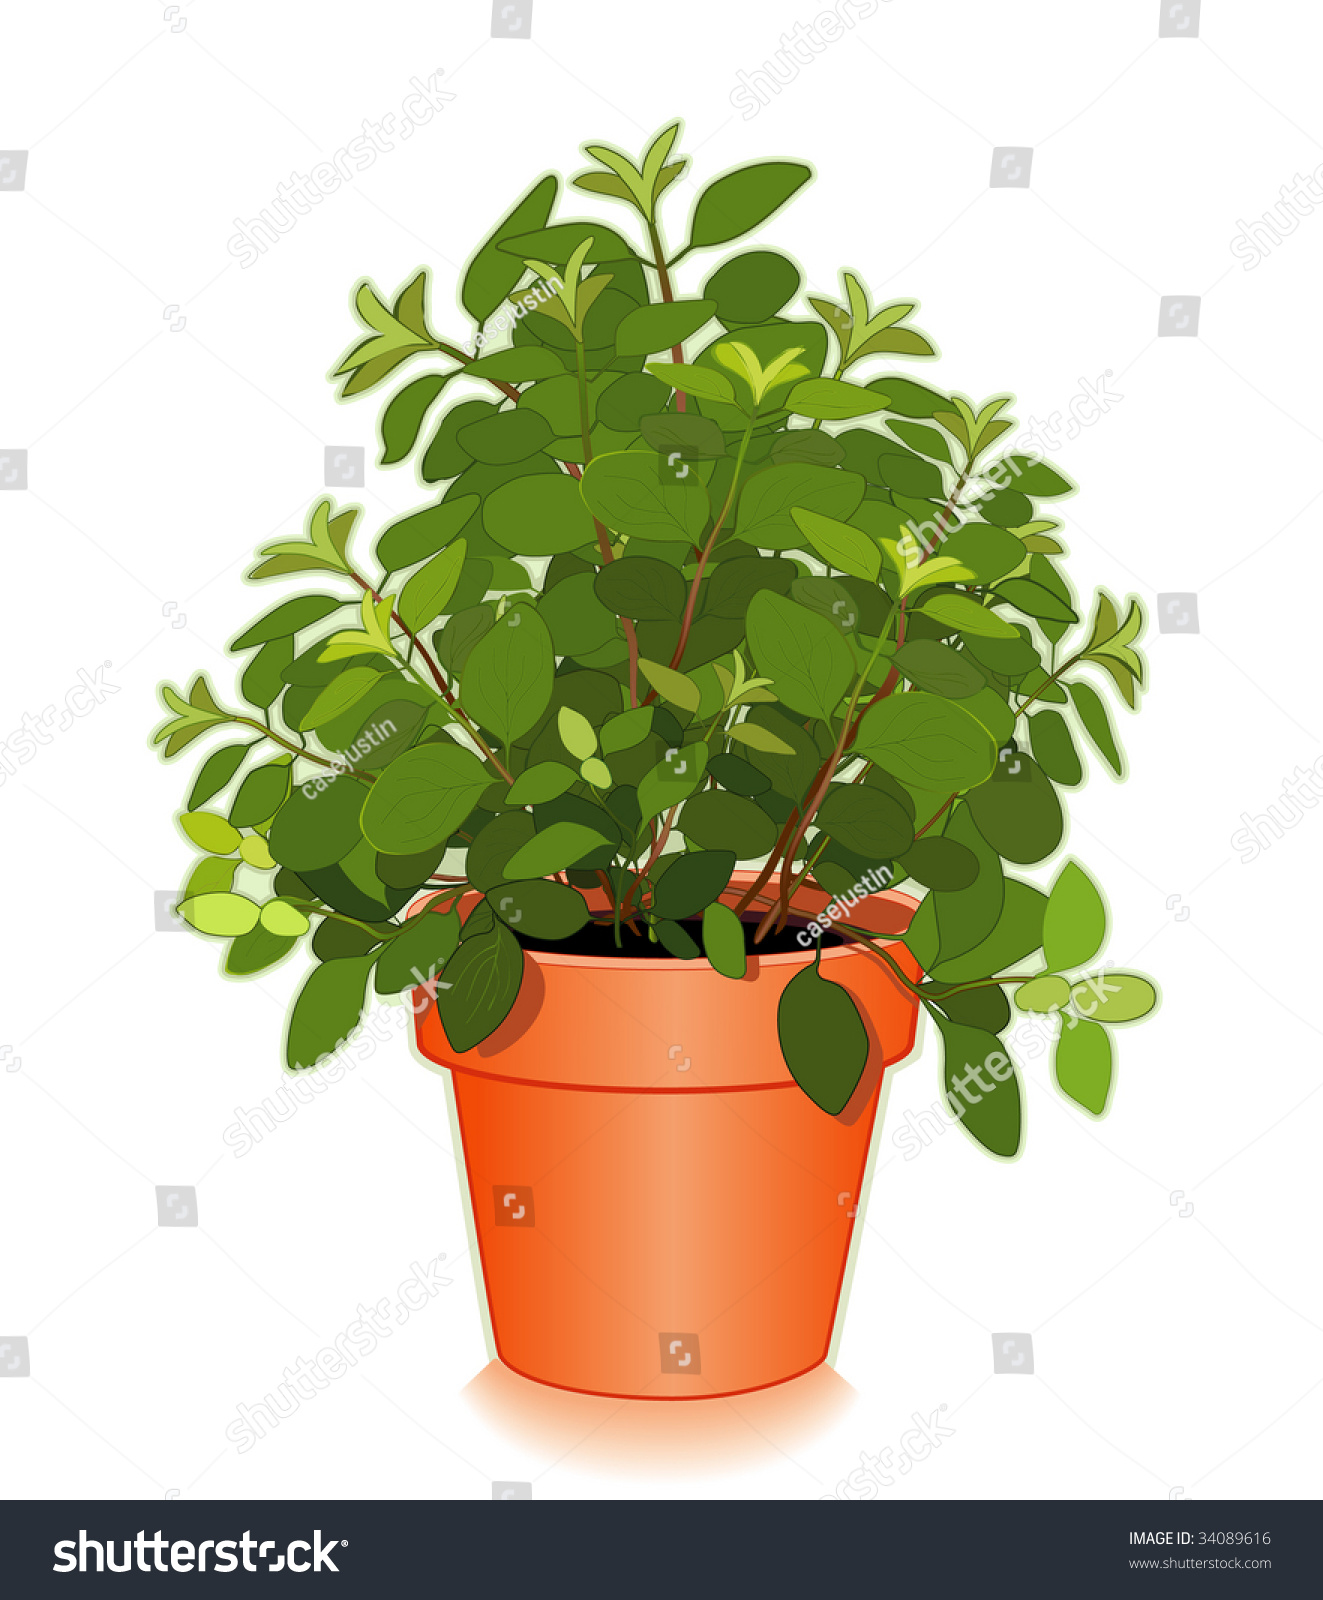 Italian oregano for meats poultry egg cheese tomato dishes soups stews in italian - Aromatic herbs pots multiple benefits ...